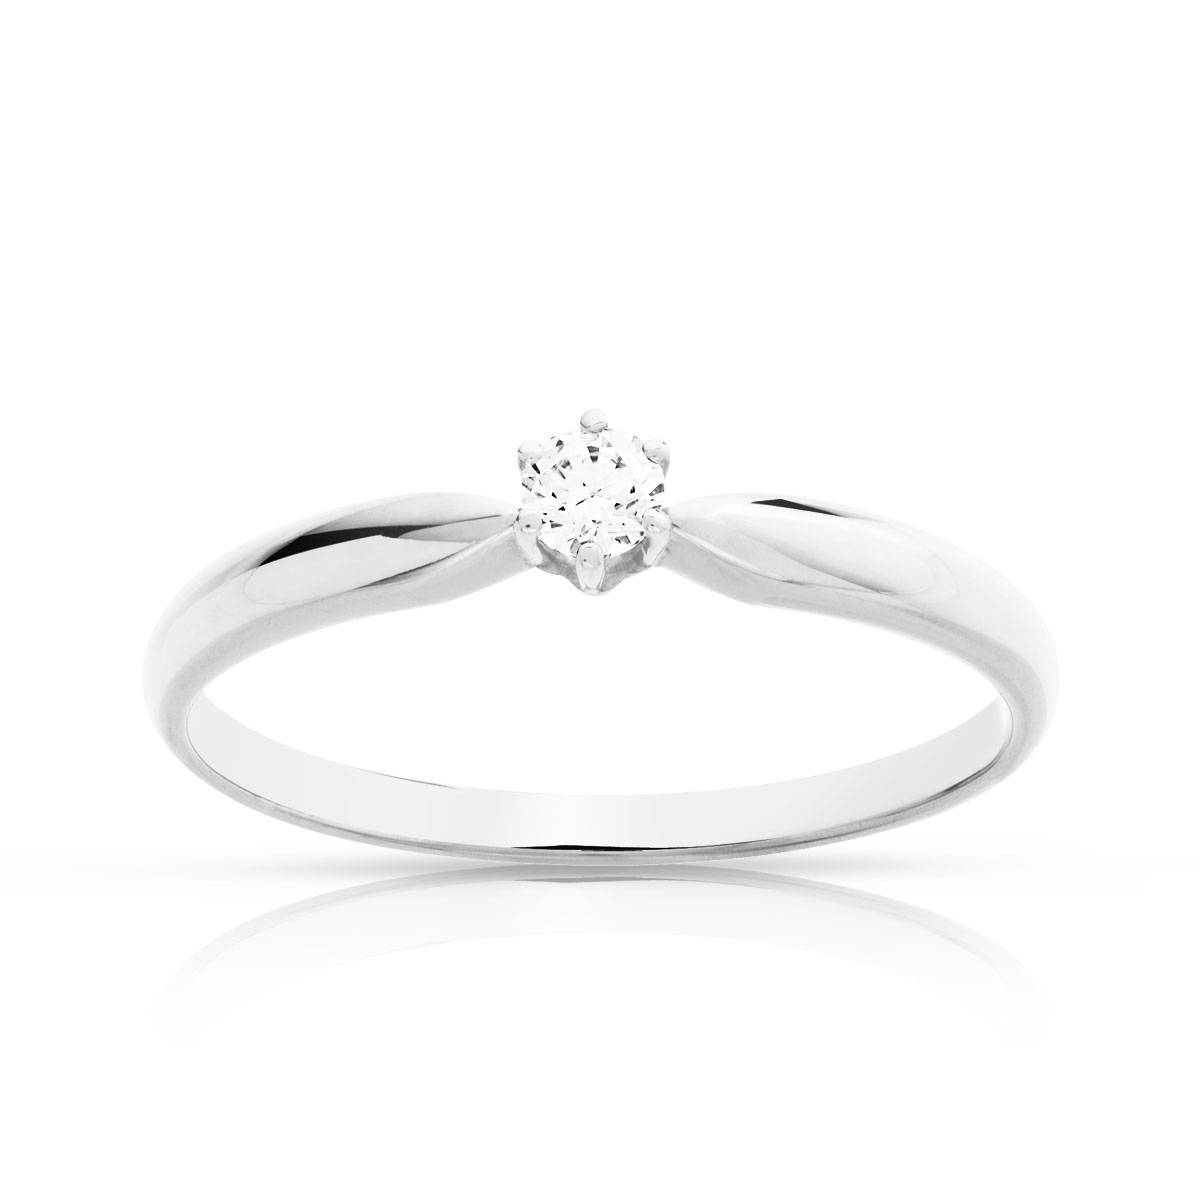 MATY Solitaire or blanc 750 diamant synthétique 0,1 carat- MATY